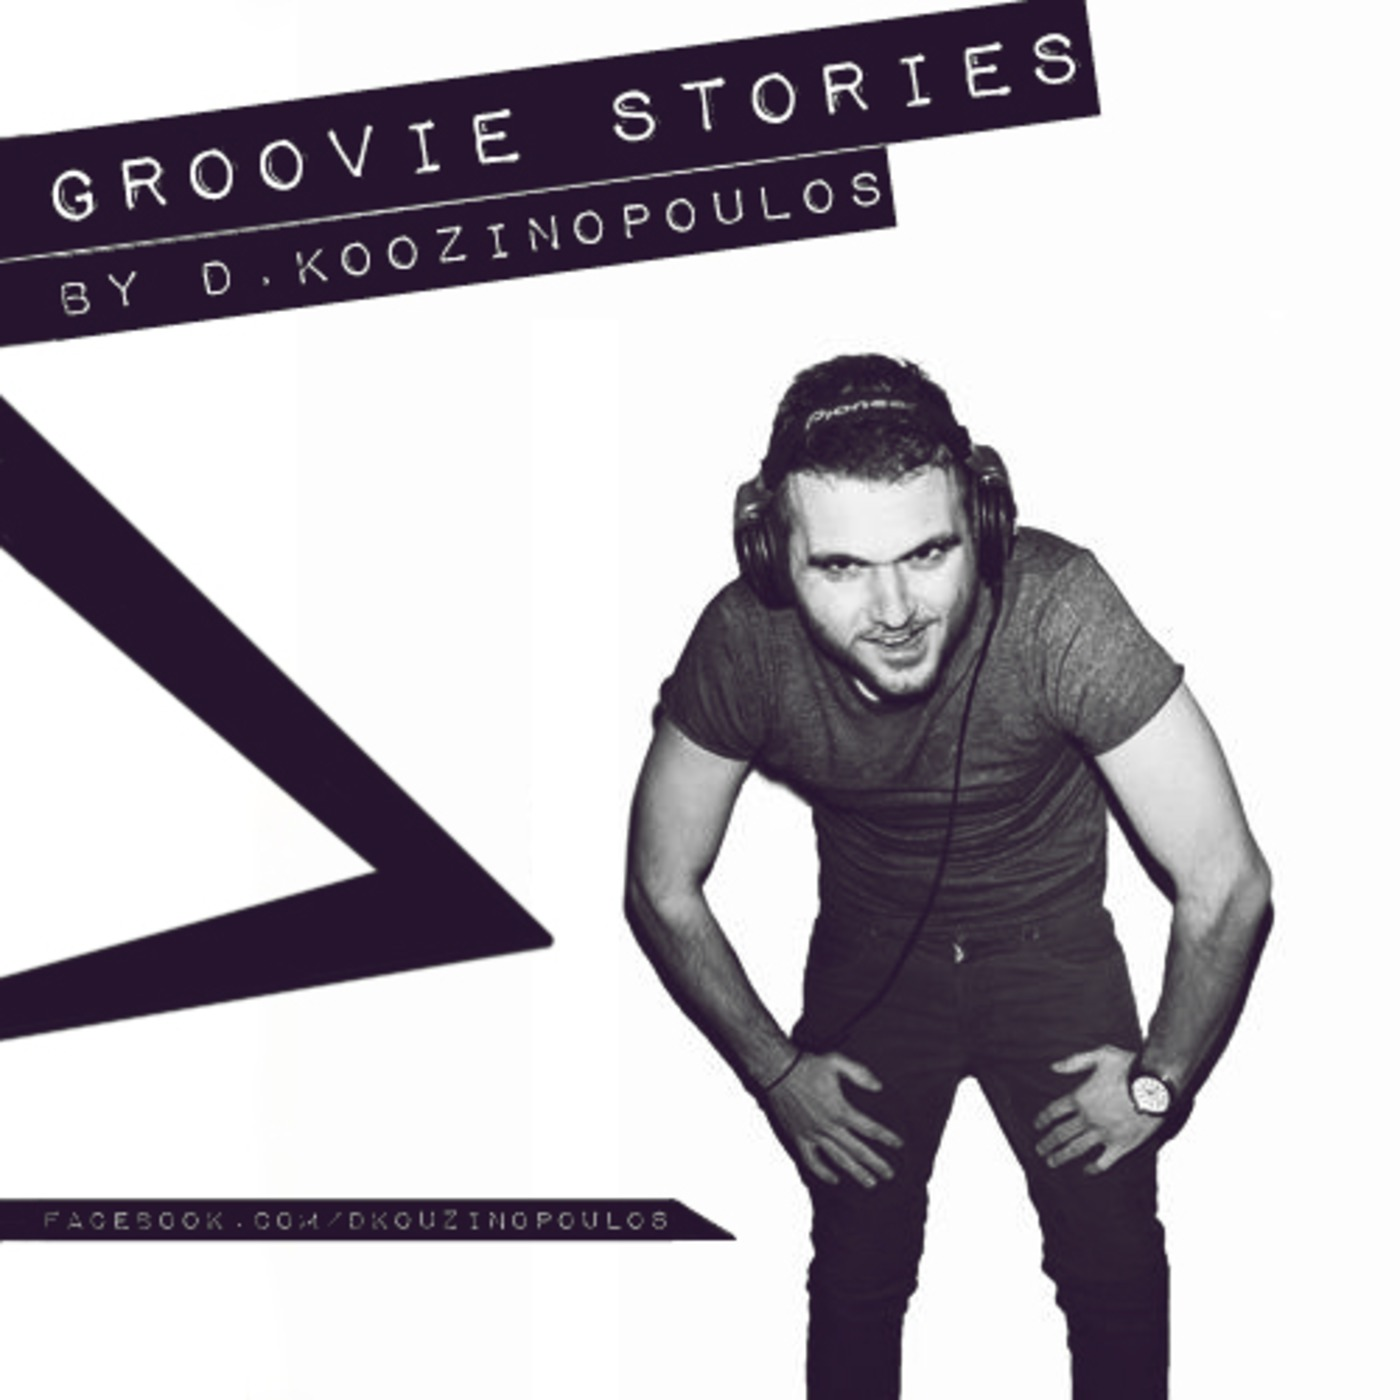 Groovie Stories